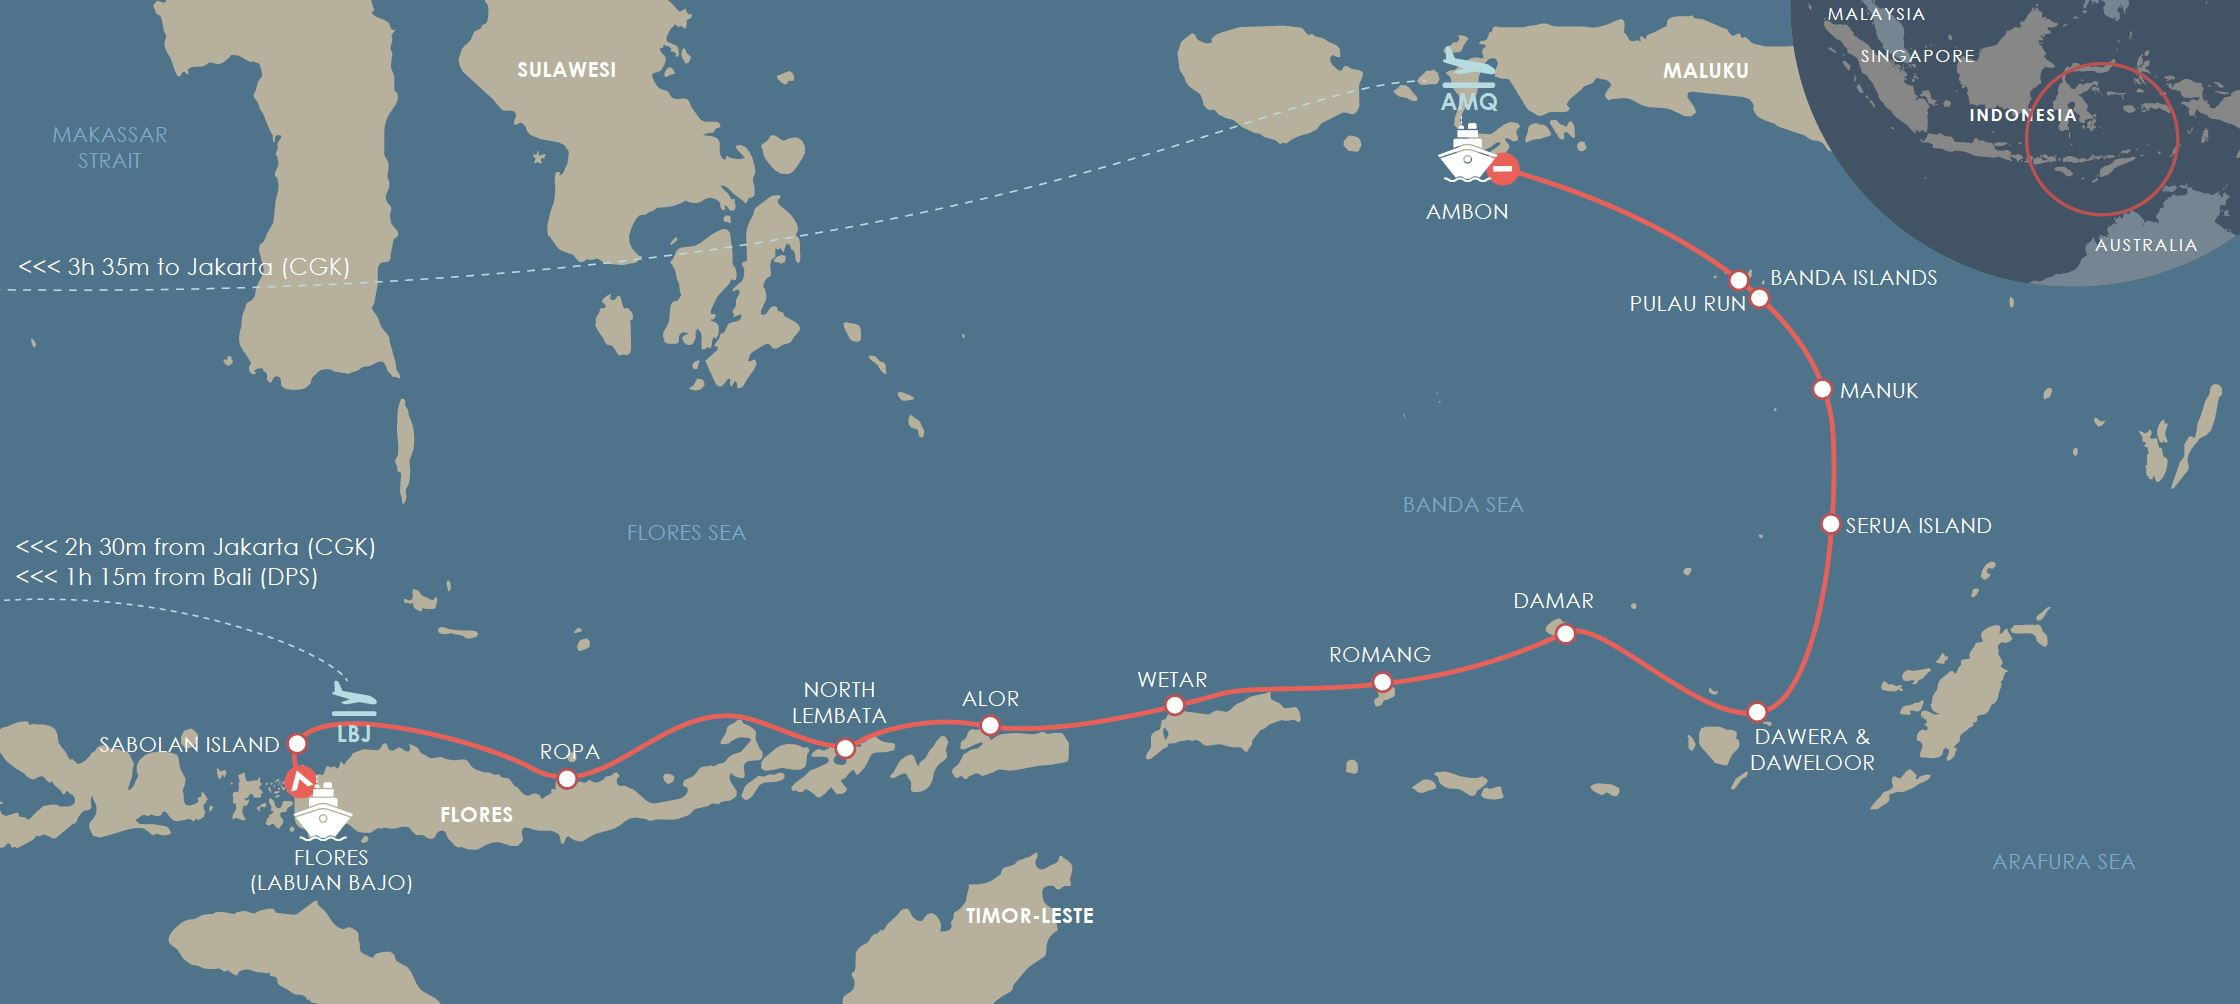 Flores to Spice islands - Flores Cruise